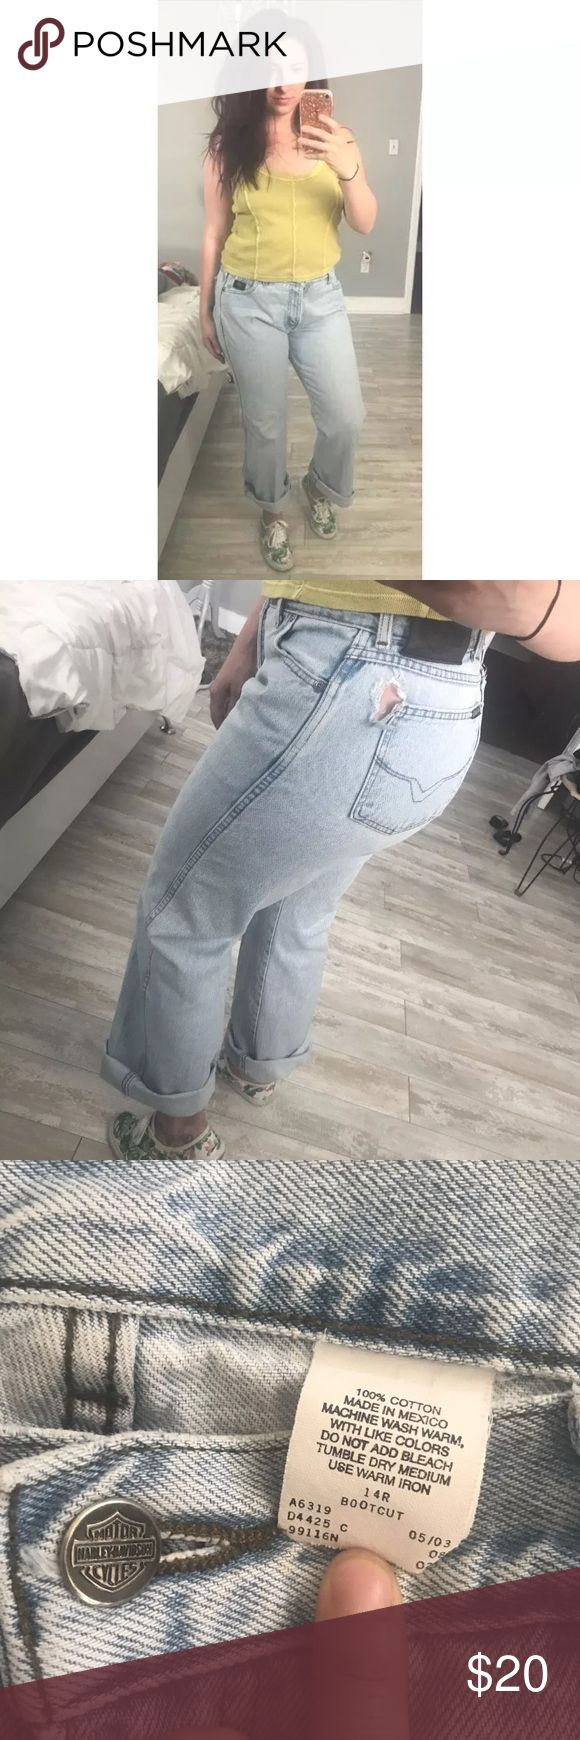 Harley Davidson Boot Cut Jeans 🏍 Great jeans! Hole near back pocket and some wear near back pockets. Boot cut, size 14. Light wash. Harley-Davidson Jeans Boot Cut